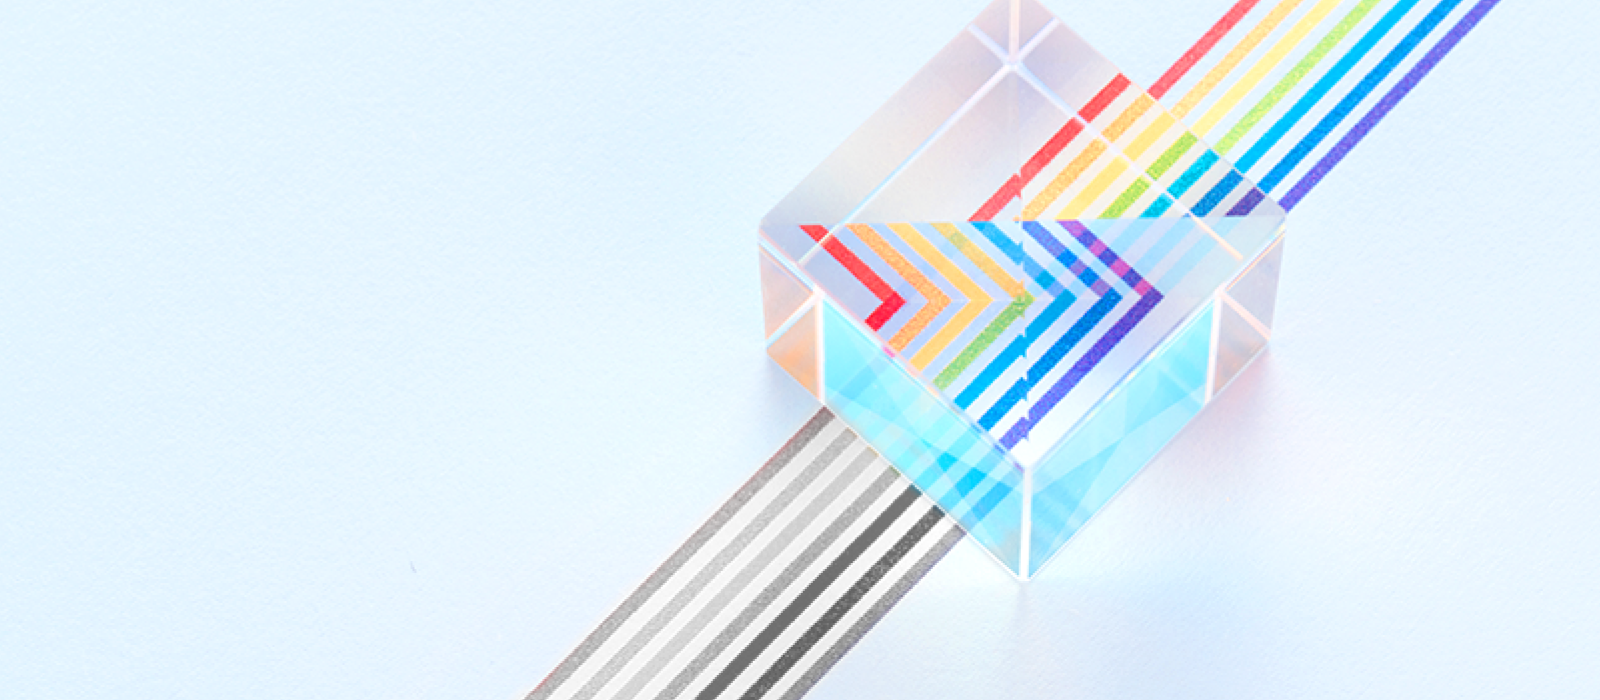 prism showing colored lines from grey